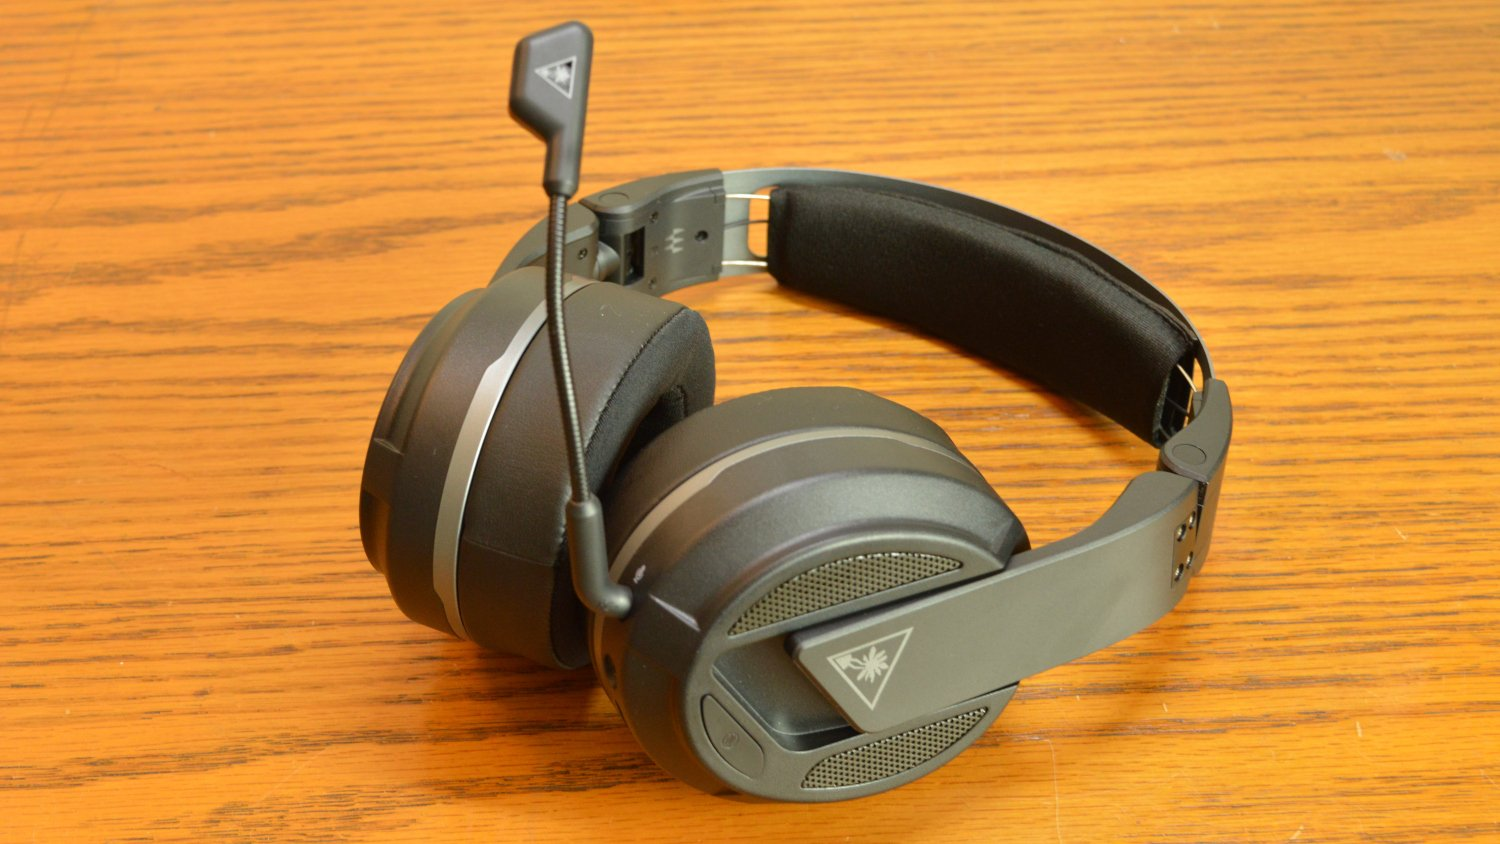 Top 10 Best Gaming Headsets